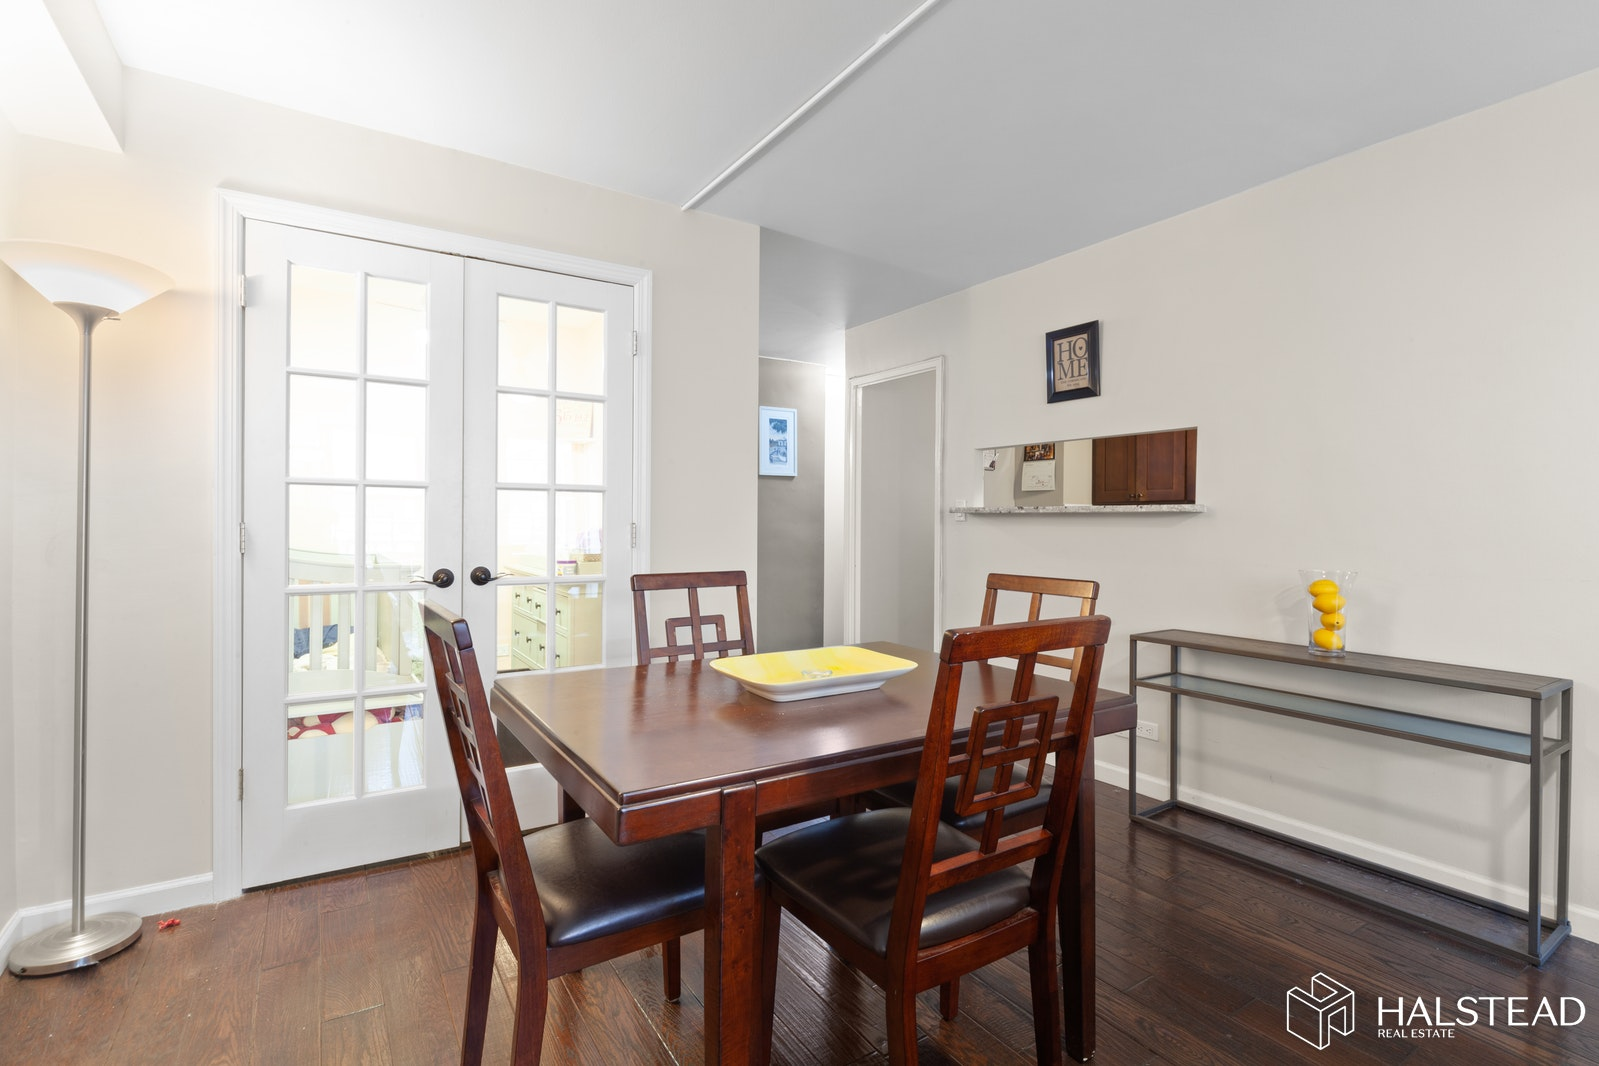 301 East 75th Street 12a, Upper East Side, NYC, 10021, $729,000, Property For Sale, Halstead Real Estate, Photo 2